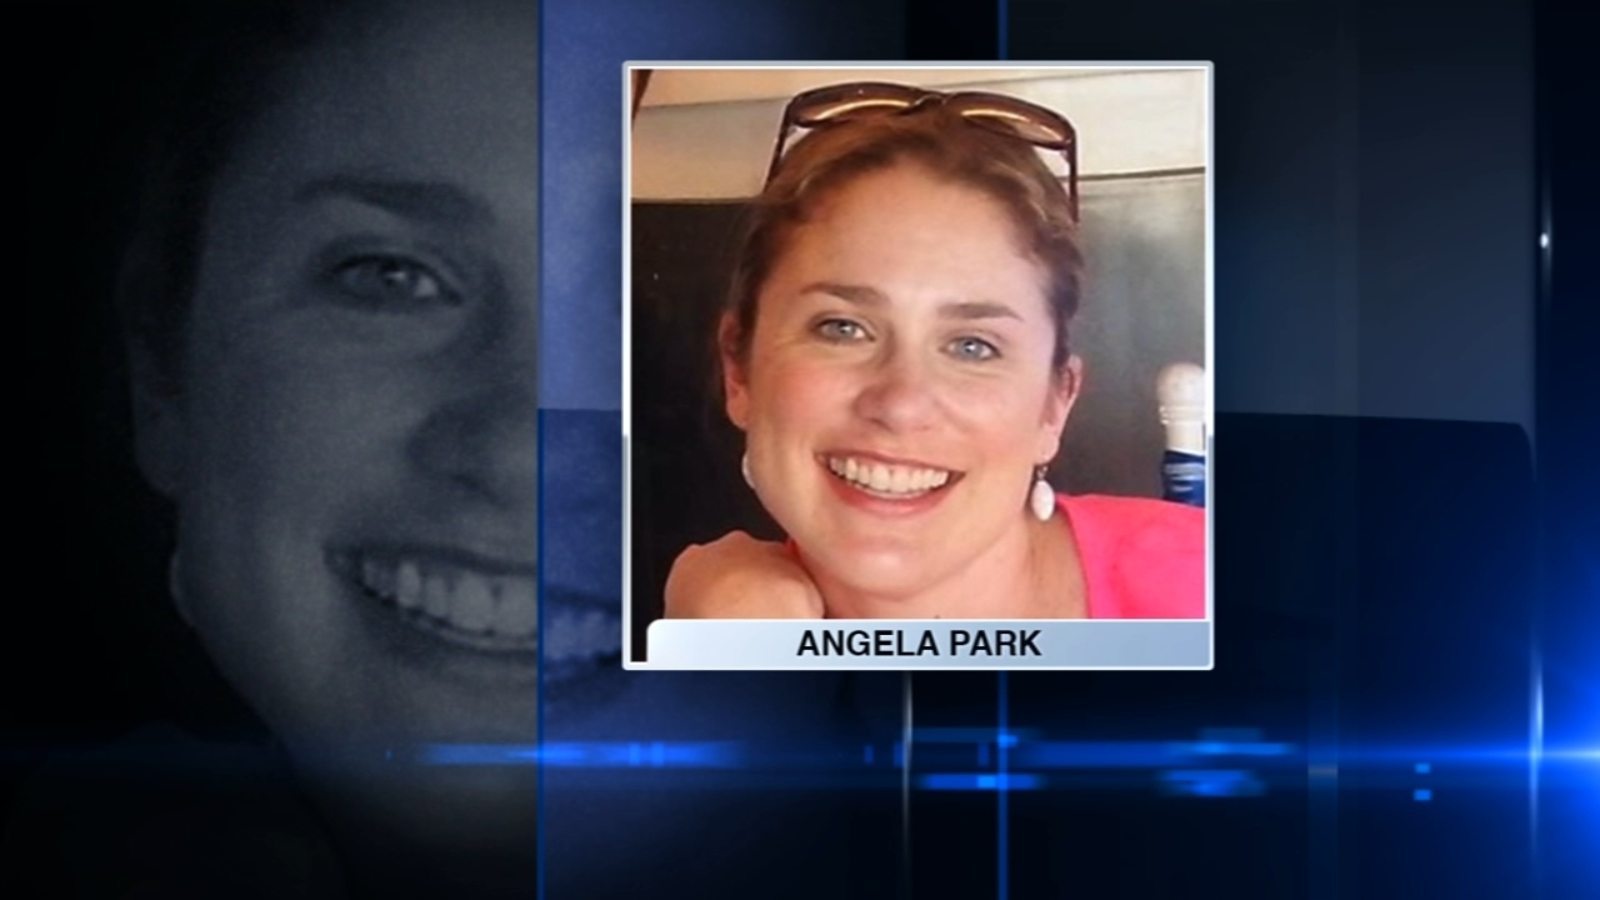 Angela Dip Fotos bicyclist fatally strucktruck in west loop id'd